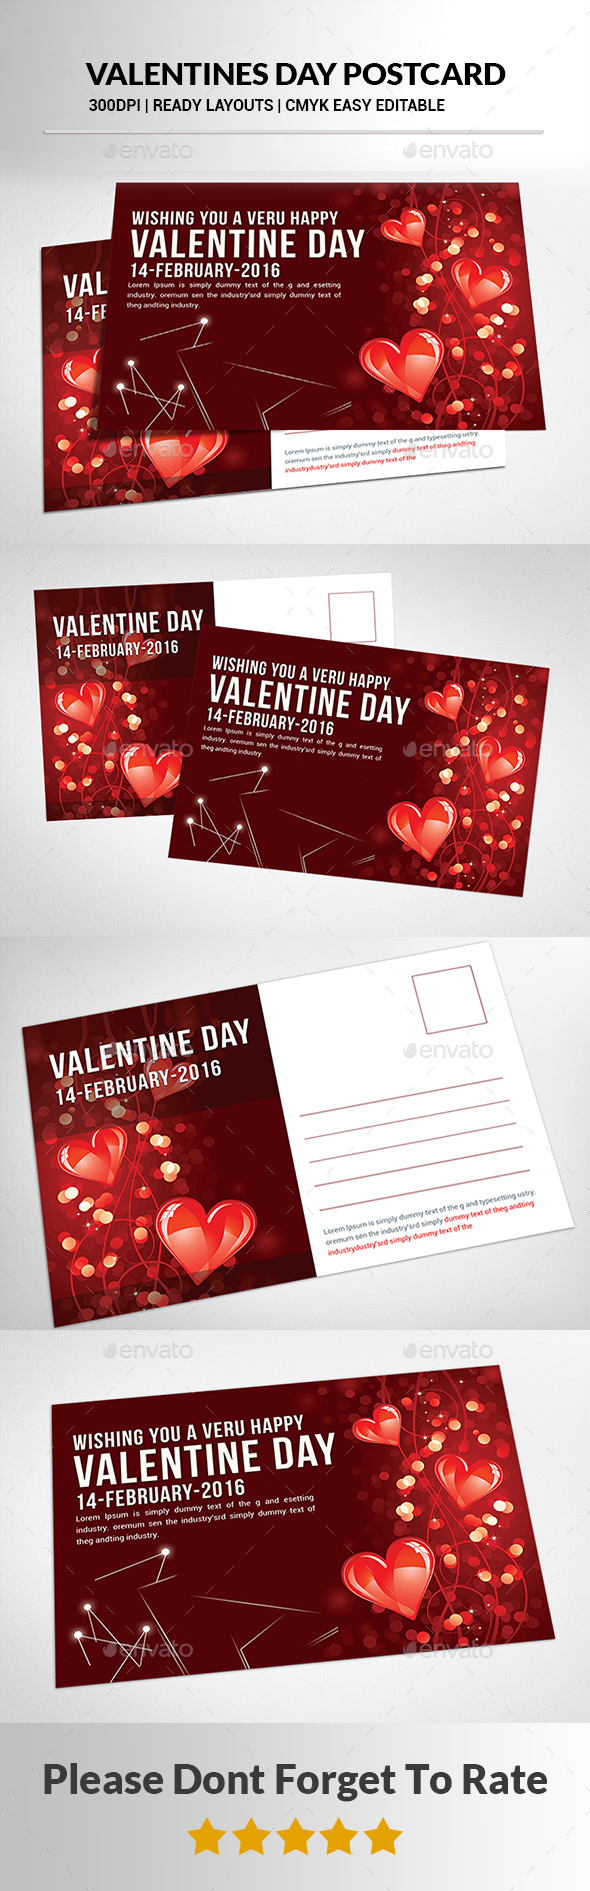 Valentines Day Postcard - Cards & Invites Print Templates